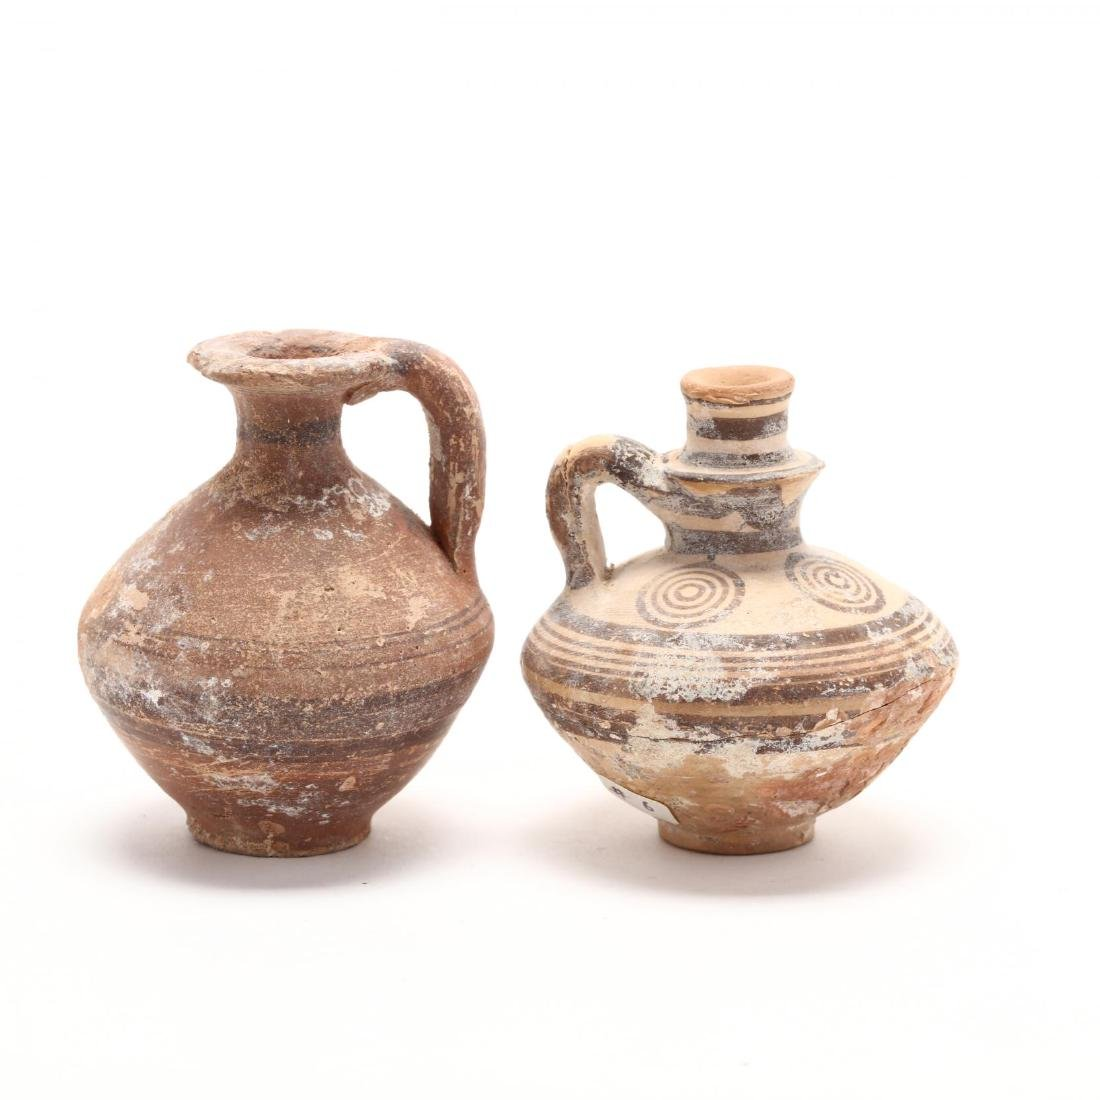 Two Cypriot Bronze Age Red Ware Juglets - 3